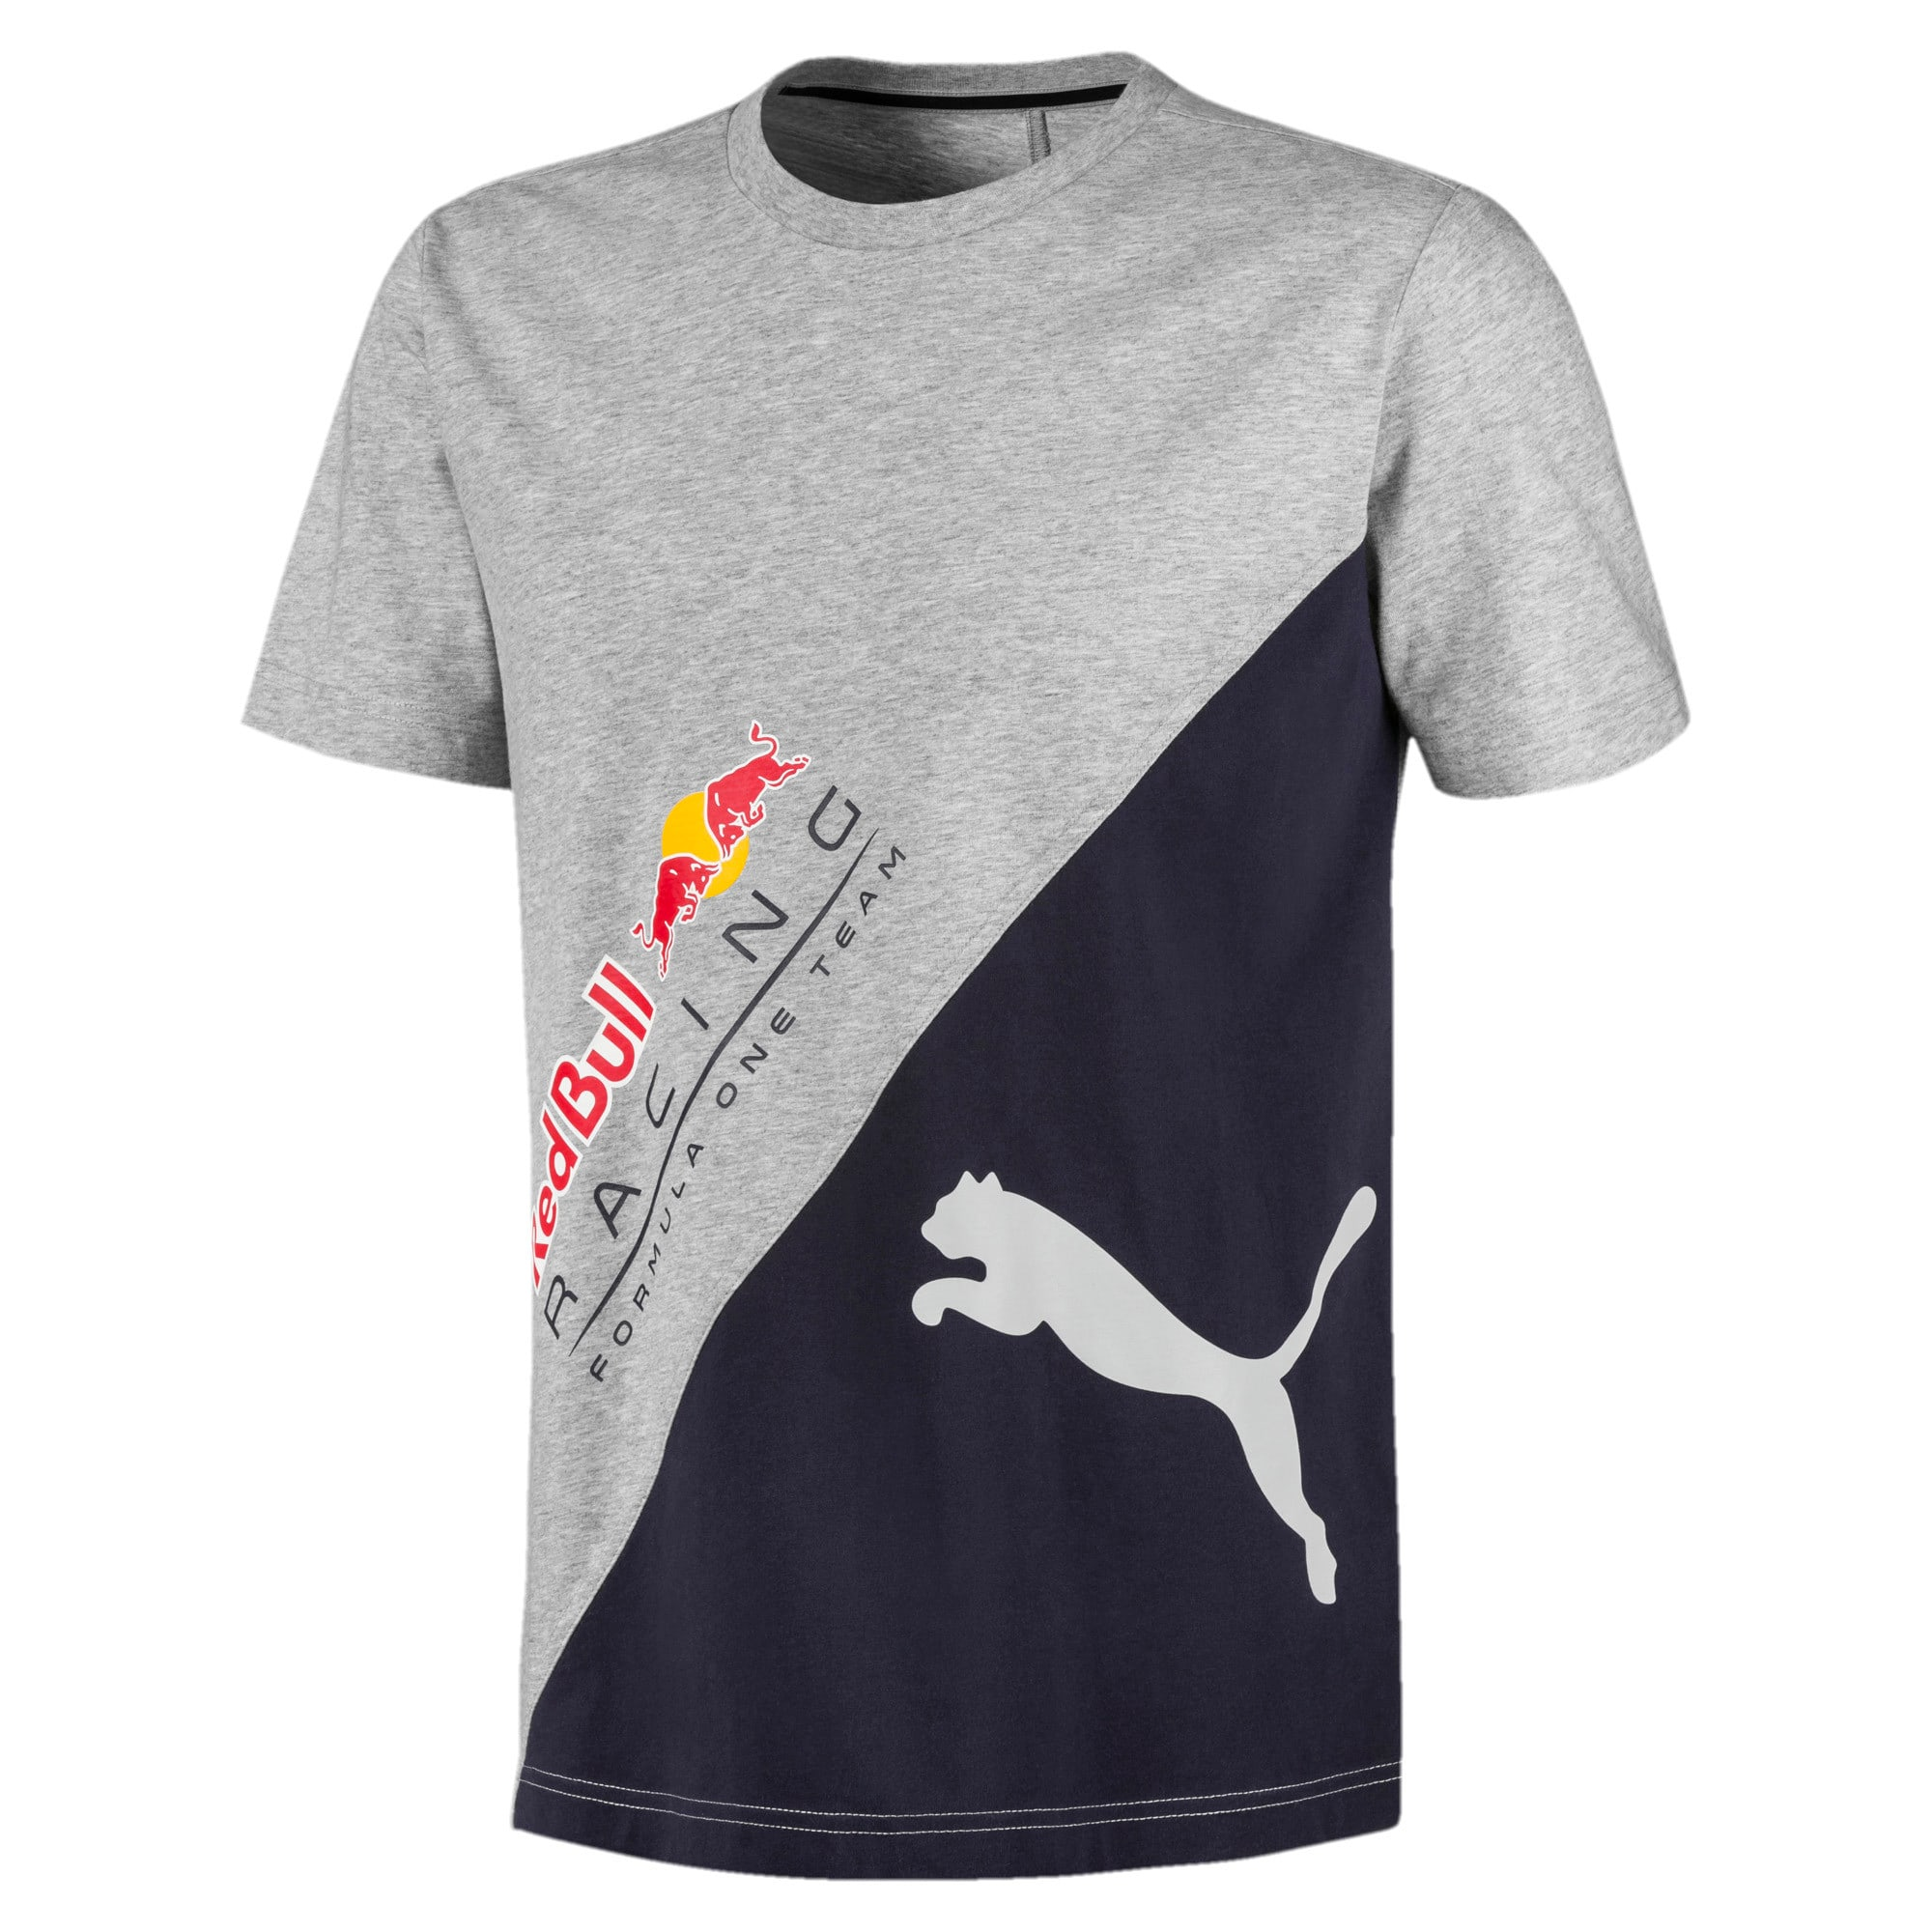 Red Bull Racing Men's Logo Tee +, Light Gray Heather, large